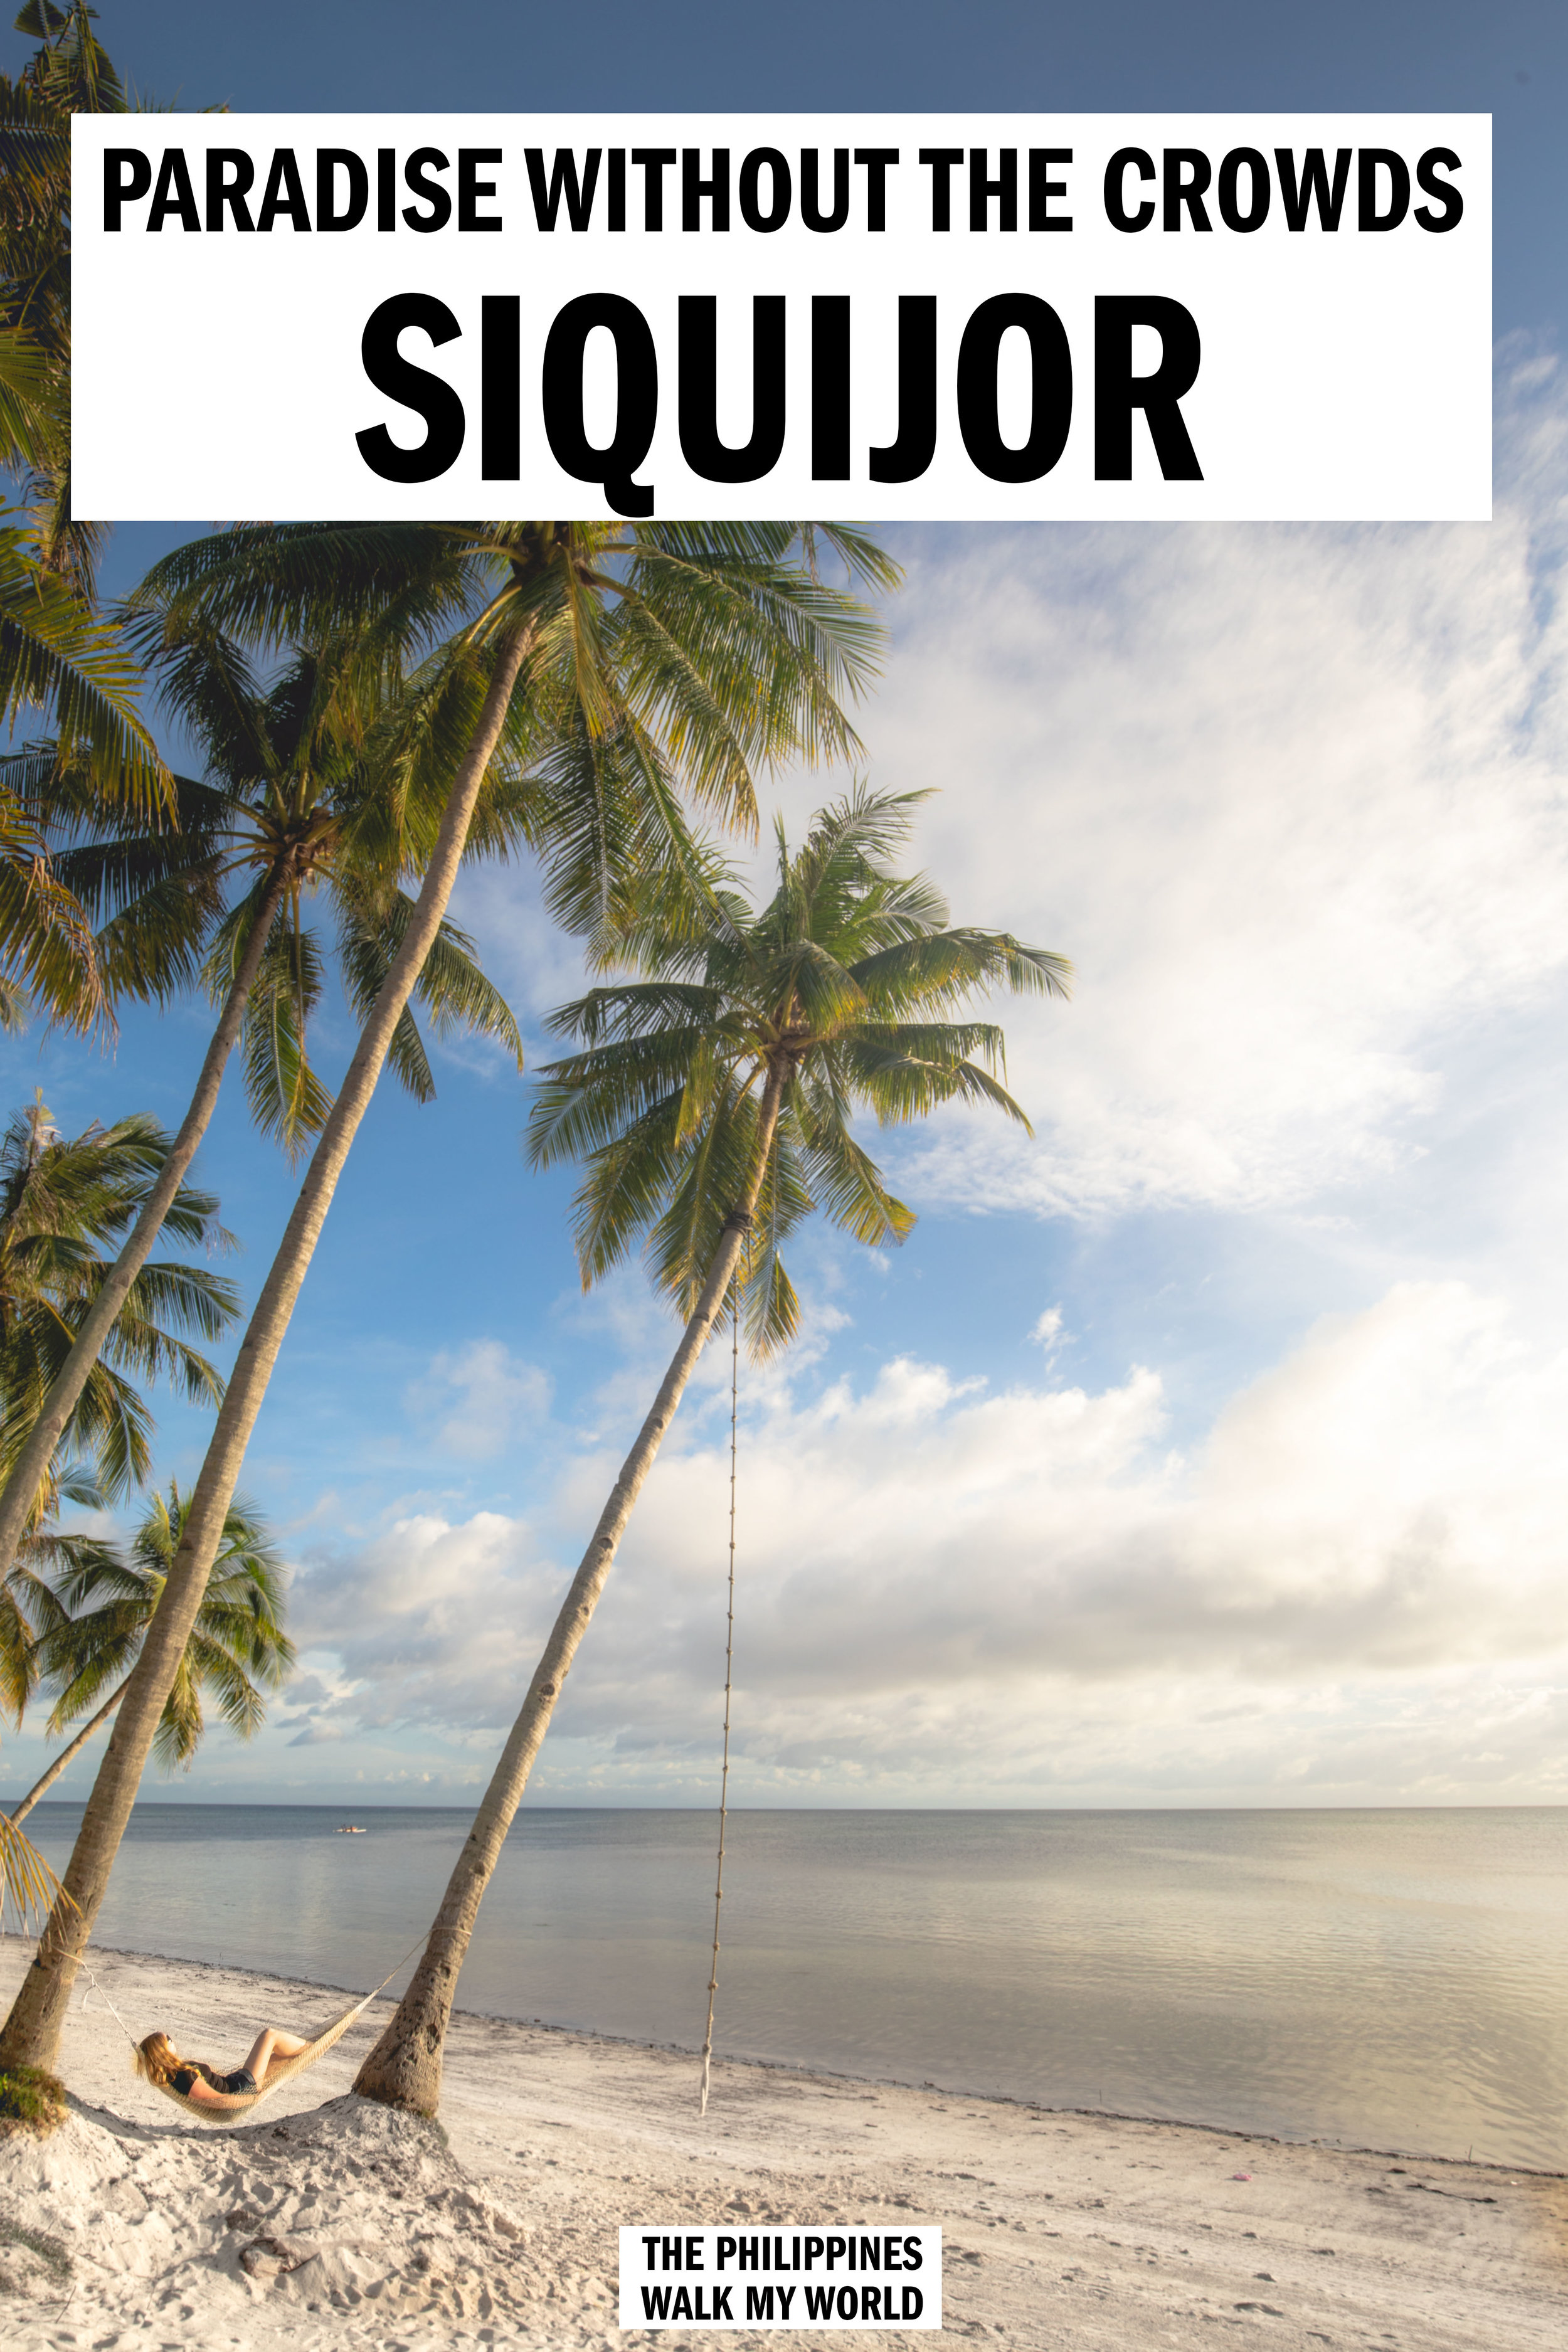 We love Siquijor! An island that has all could you want in South-East Asia: beautiful beaches, stunning waterfalls, friendly people and great value food & accommodation. Here's how to plan your trip to this hidden gem. #ThePhilippines #Siquijor #Asia